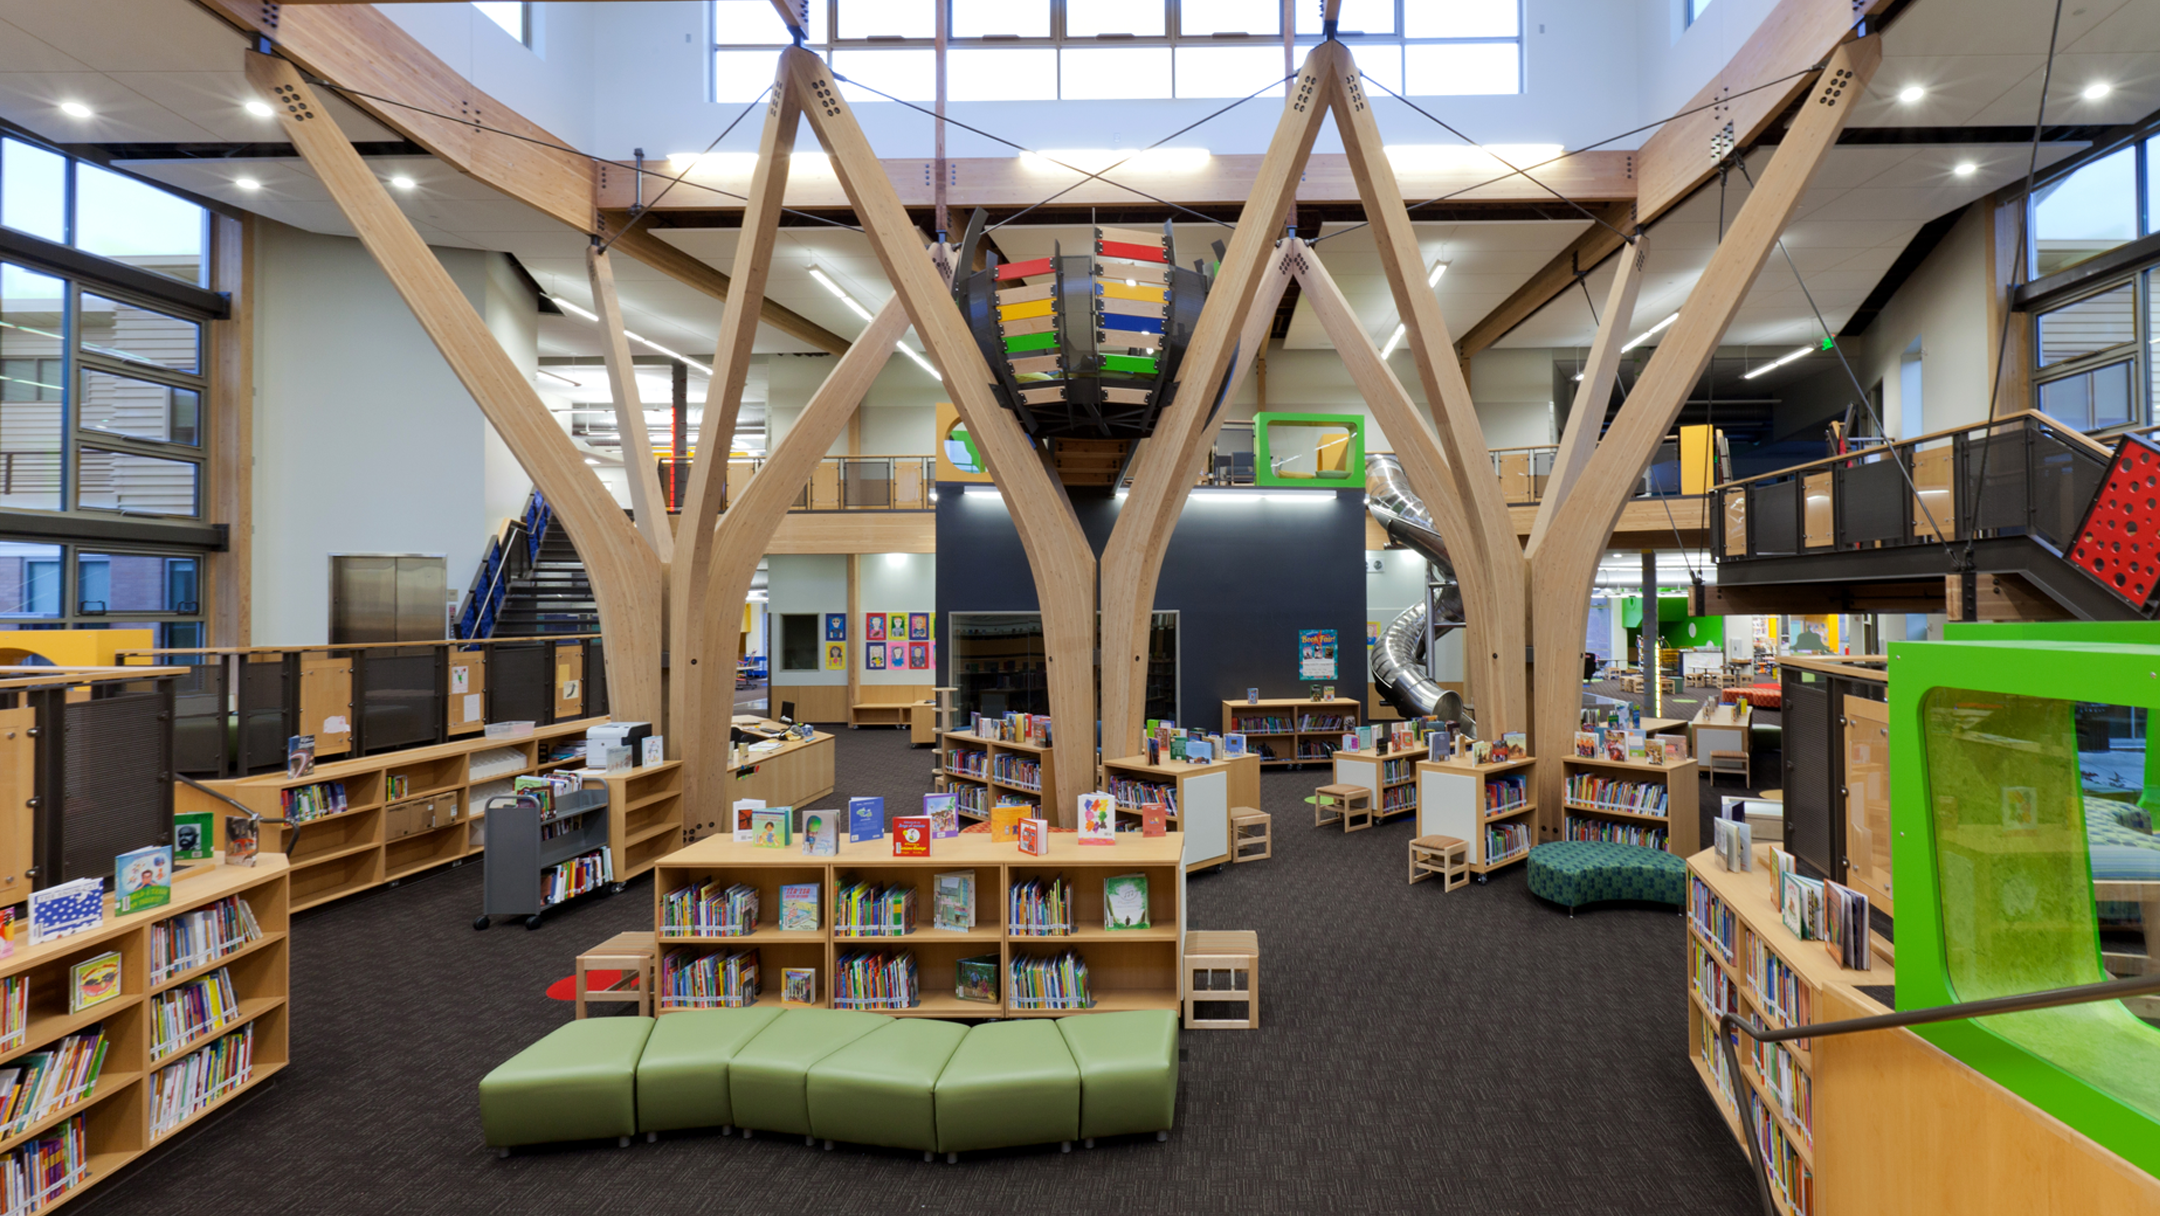 Trillium Creek Primary School interior library